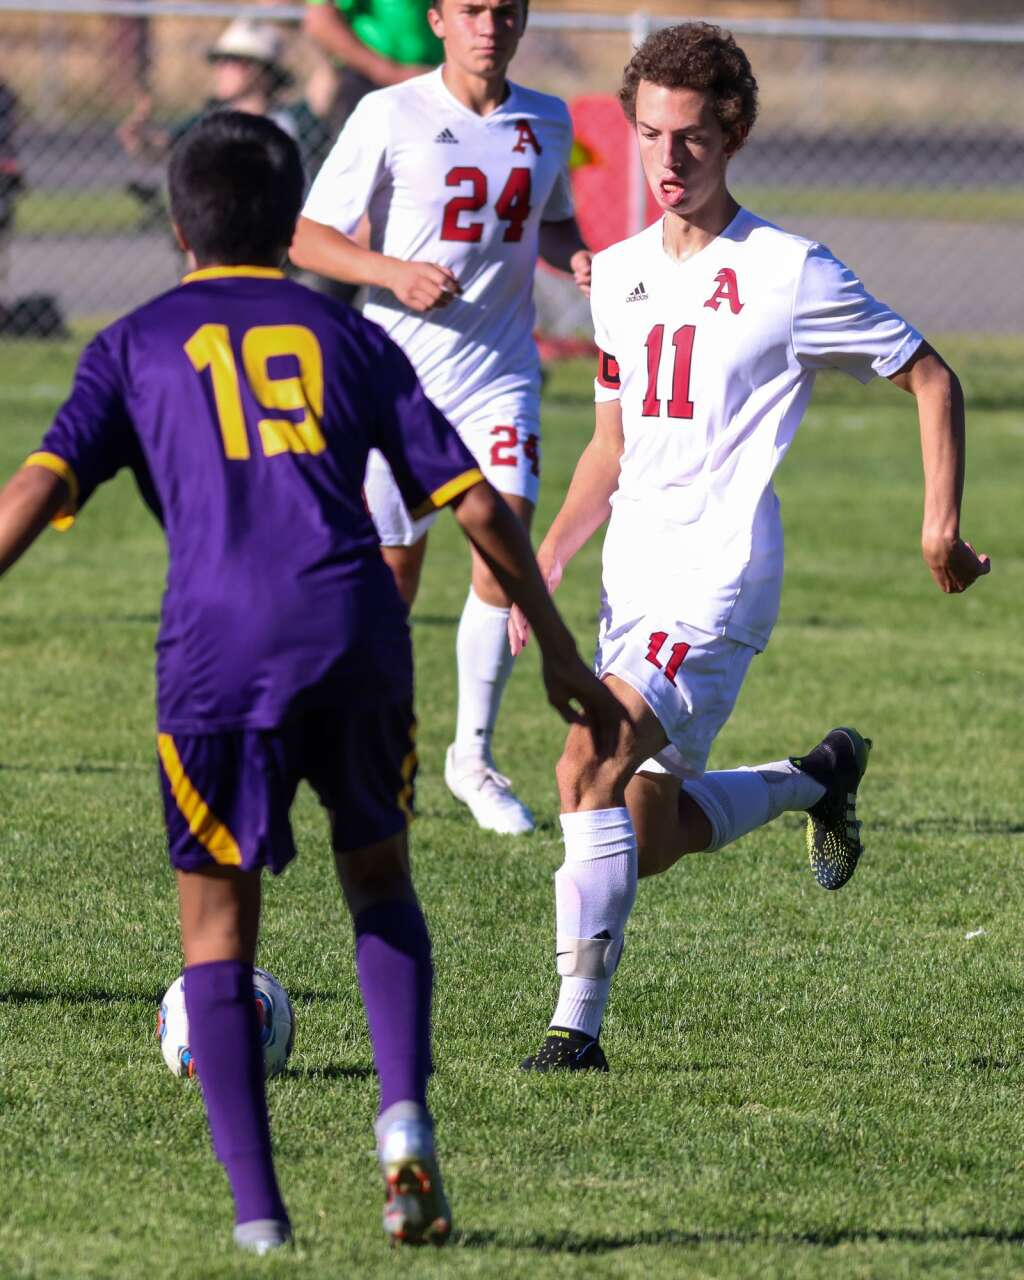 Aspen High School boys soccer player Ansel Whitley controls the ball against Basalt on Wednesday, Sept. 15, 2021, on the BHS field. | Photo by Austin Colbert/The Aspen Times